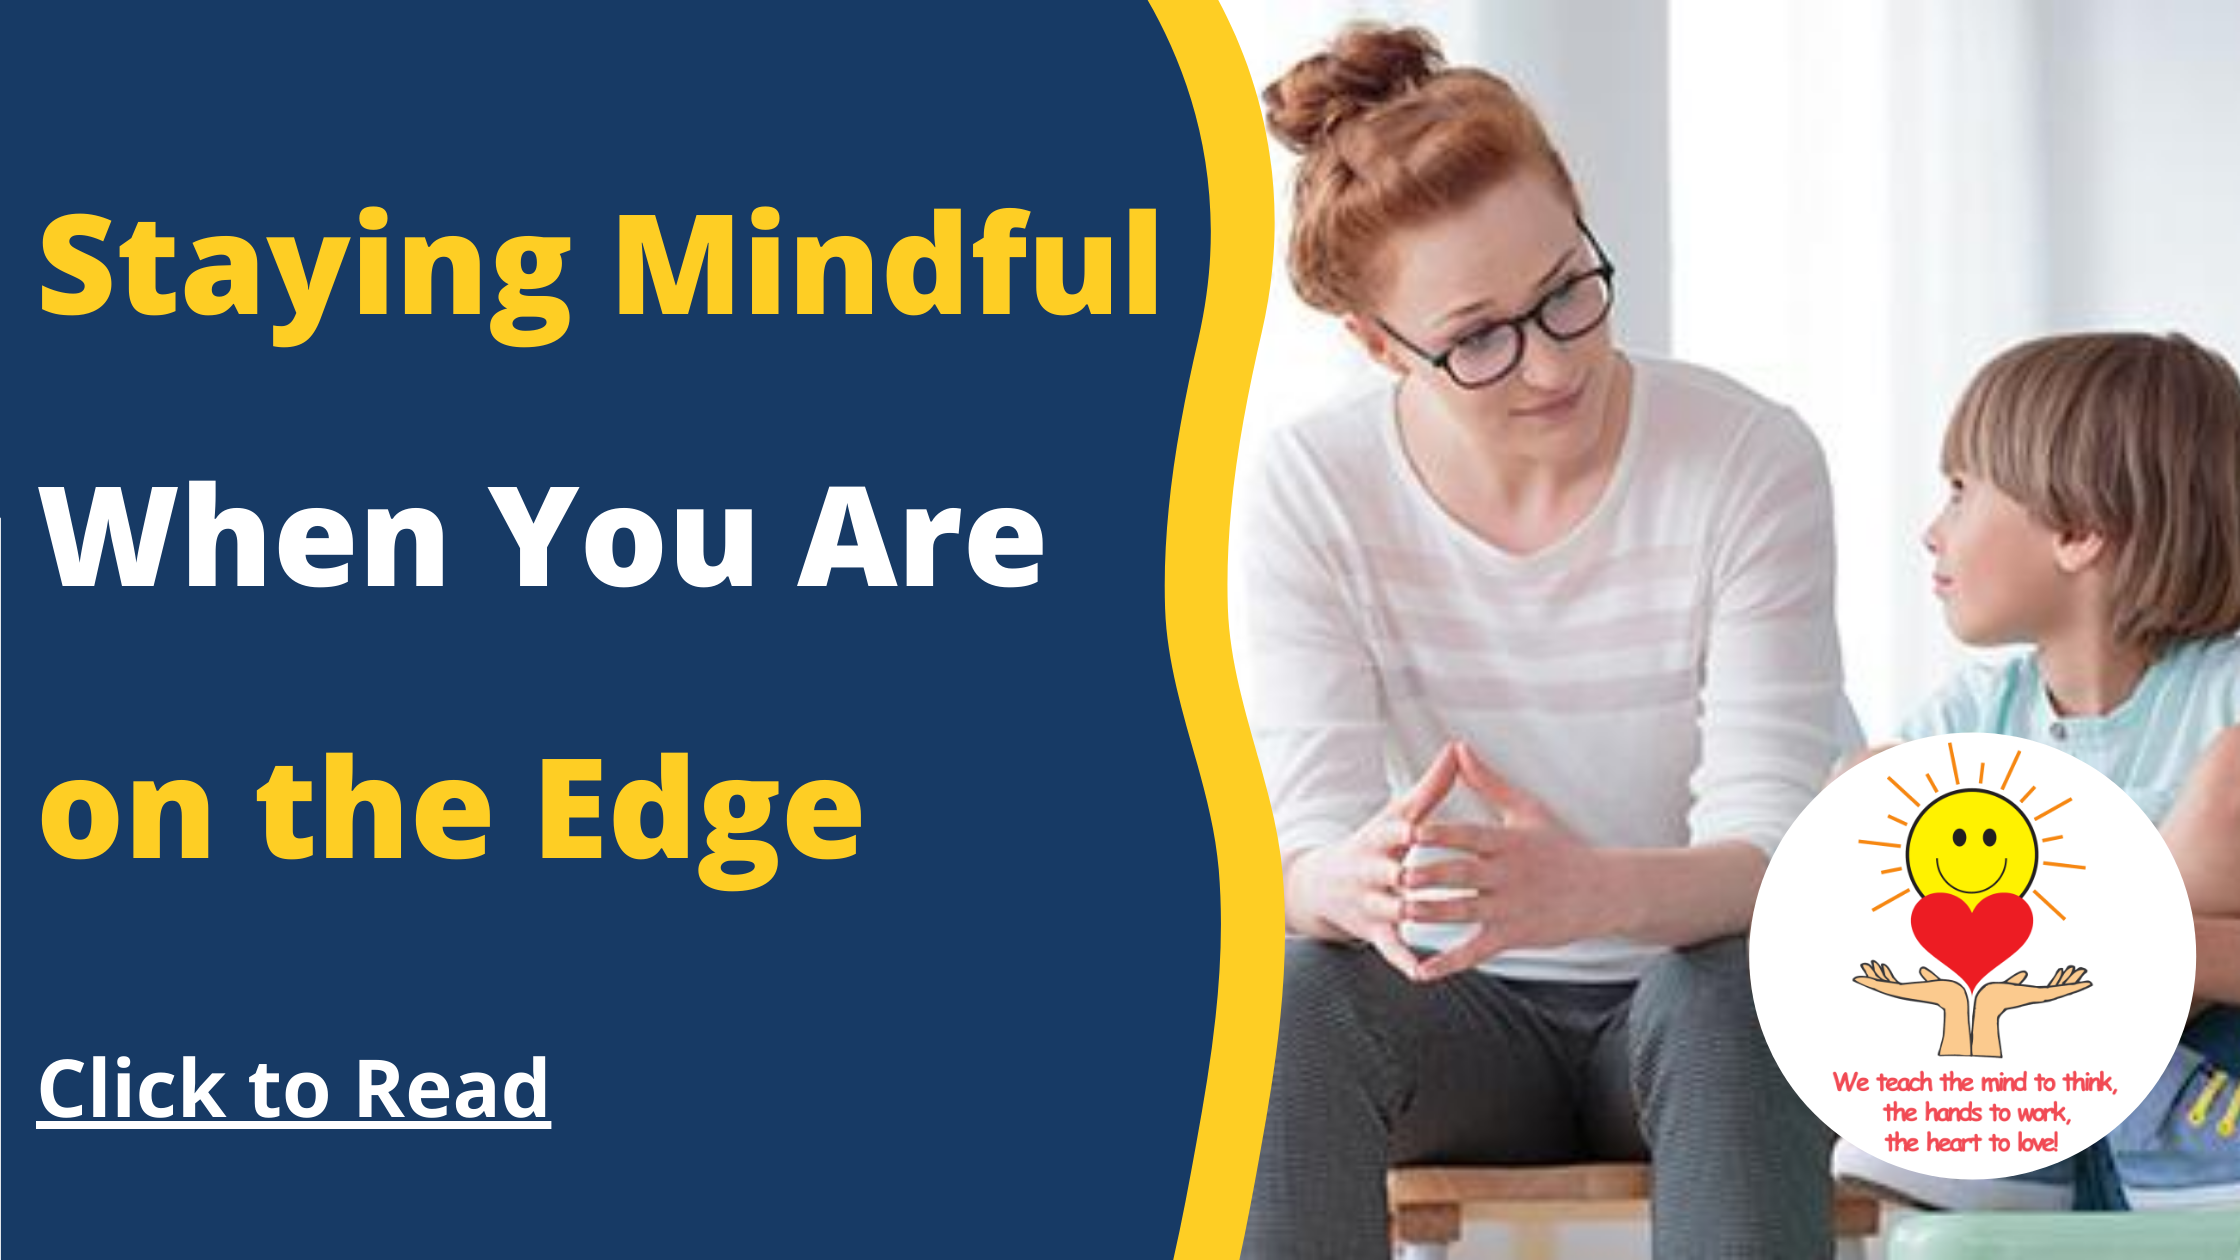 Staying Mindful When You Are on the Edge